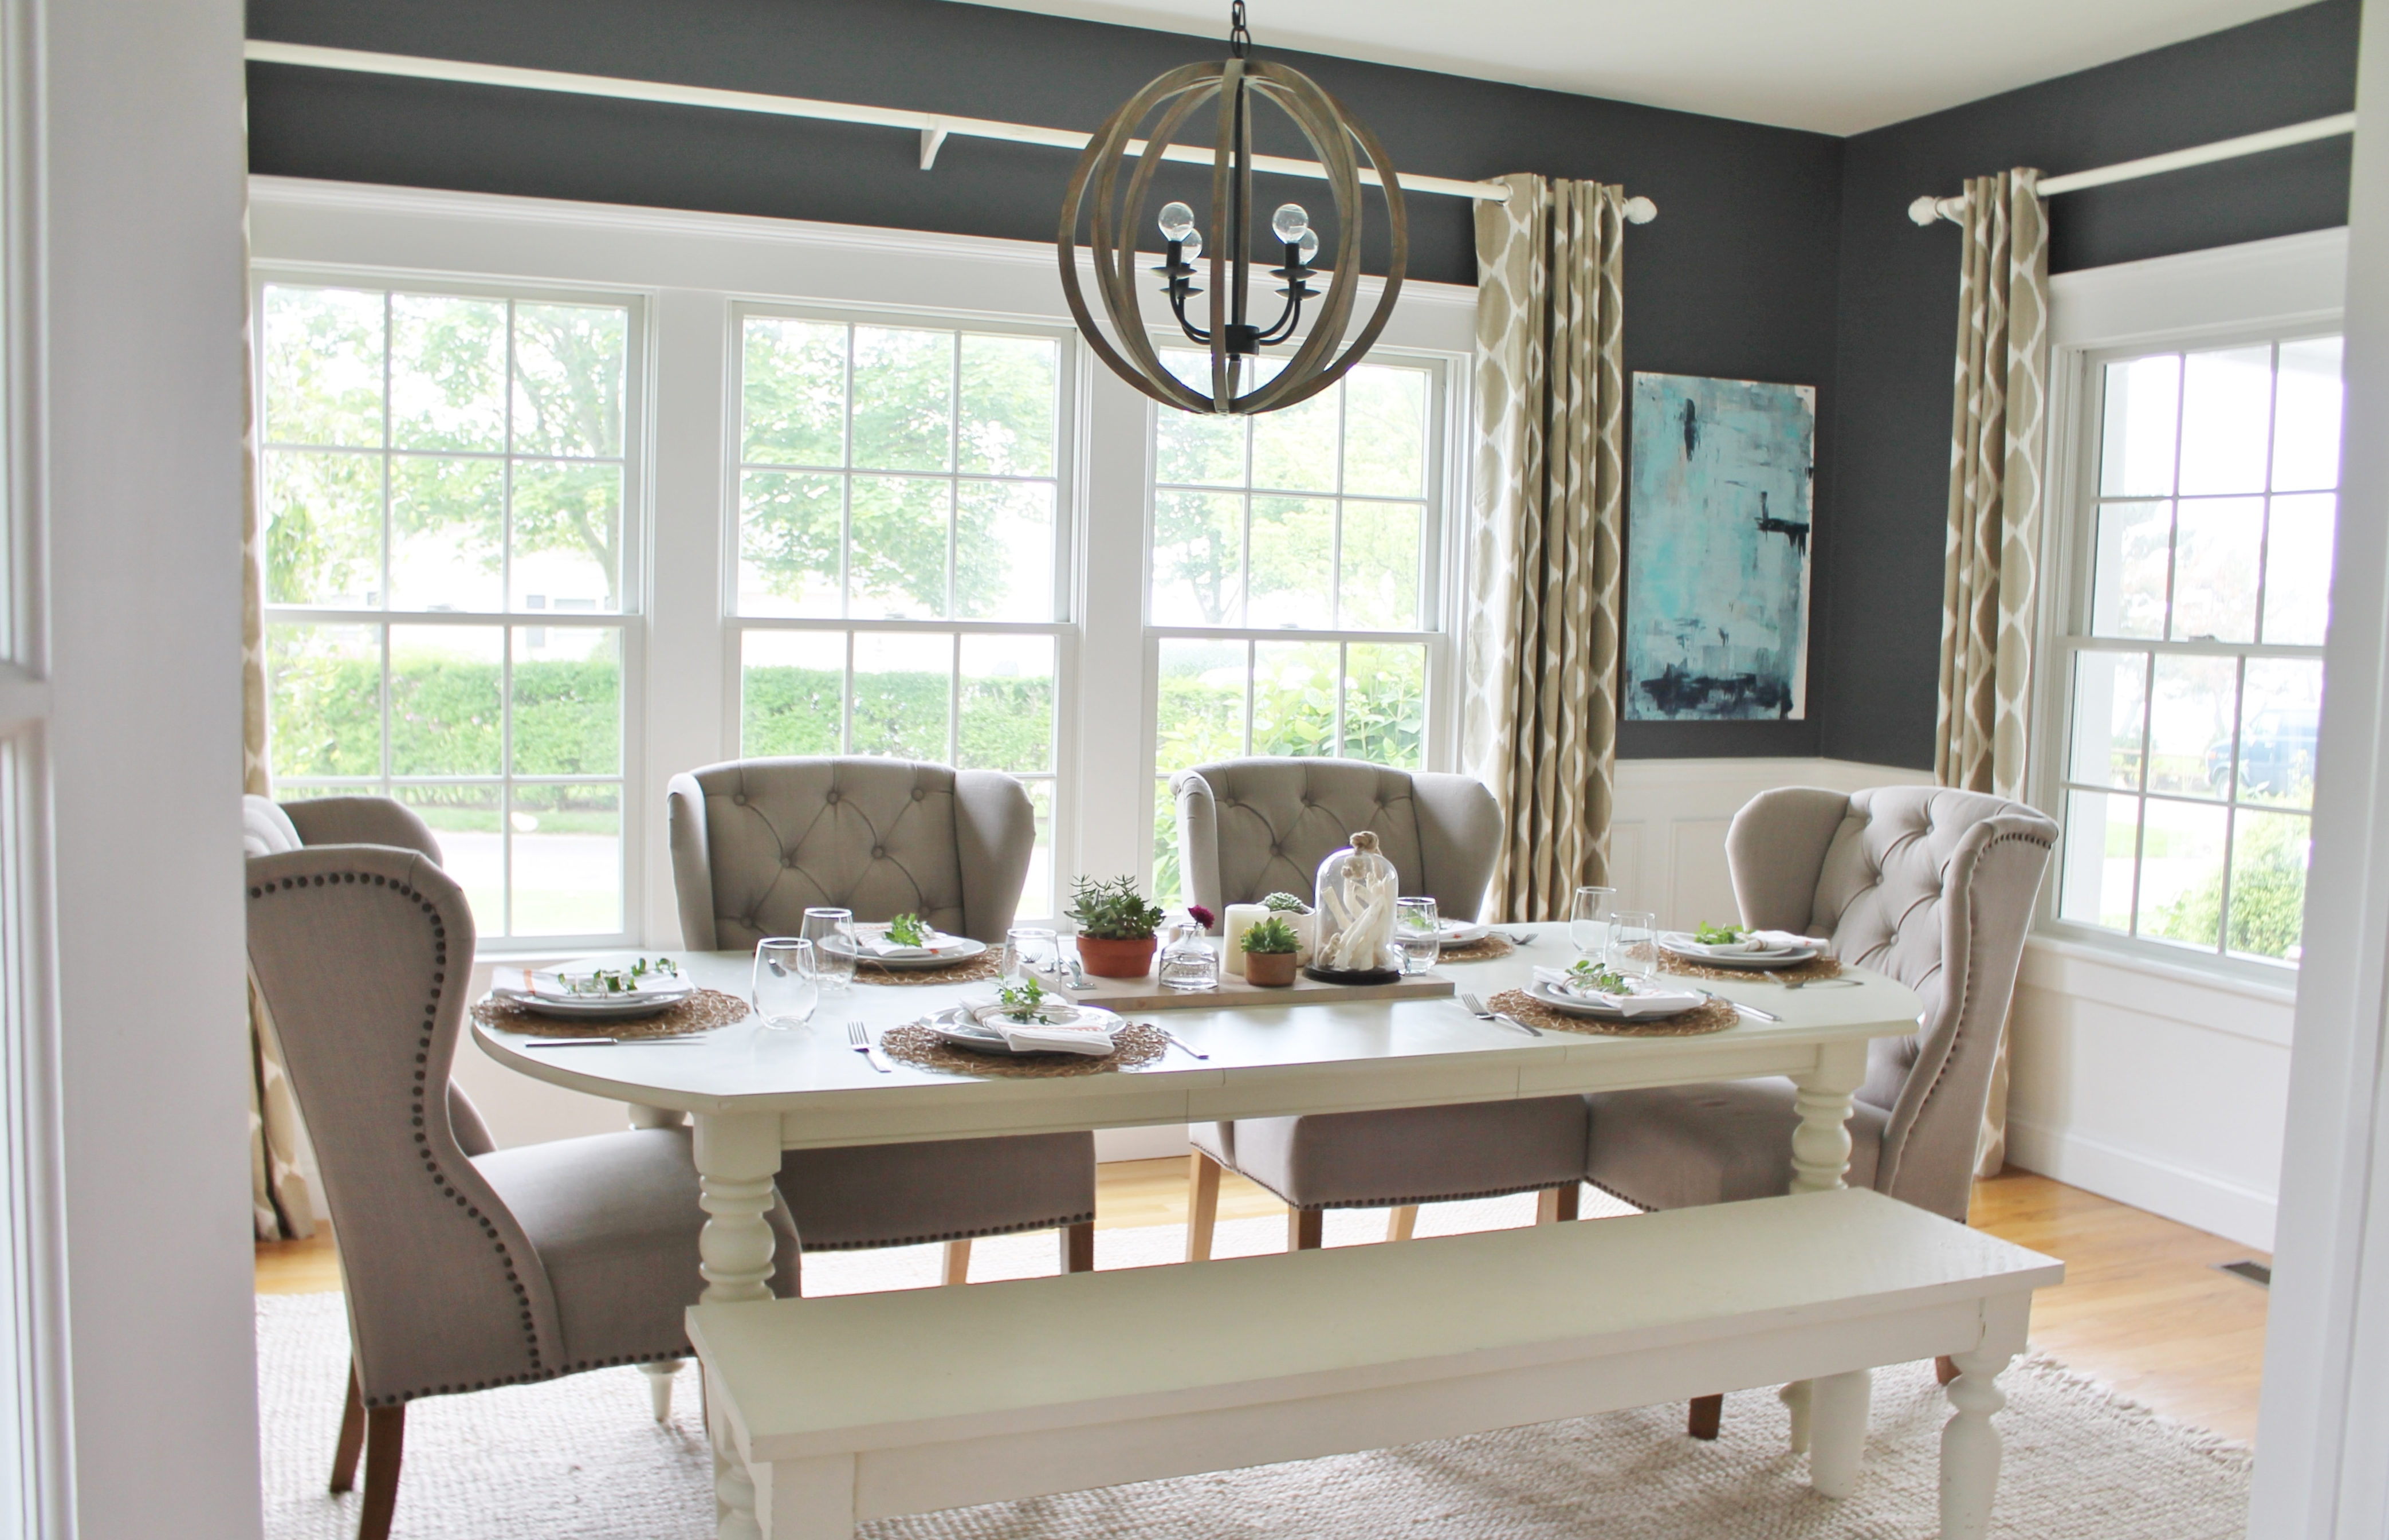 Modern Farmhouse Dining Room: Summer Tour-Dining Room Reveal